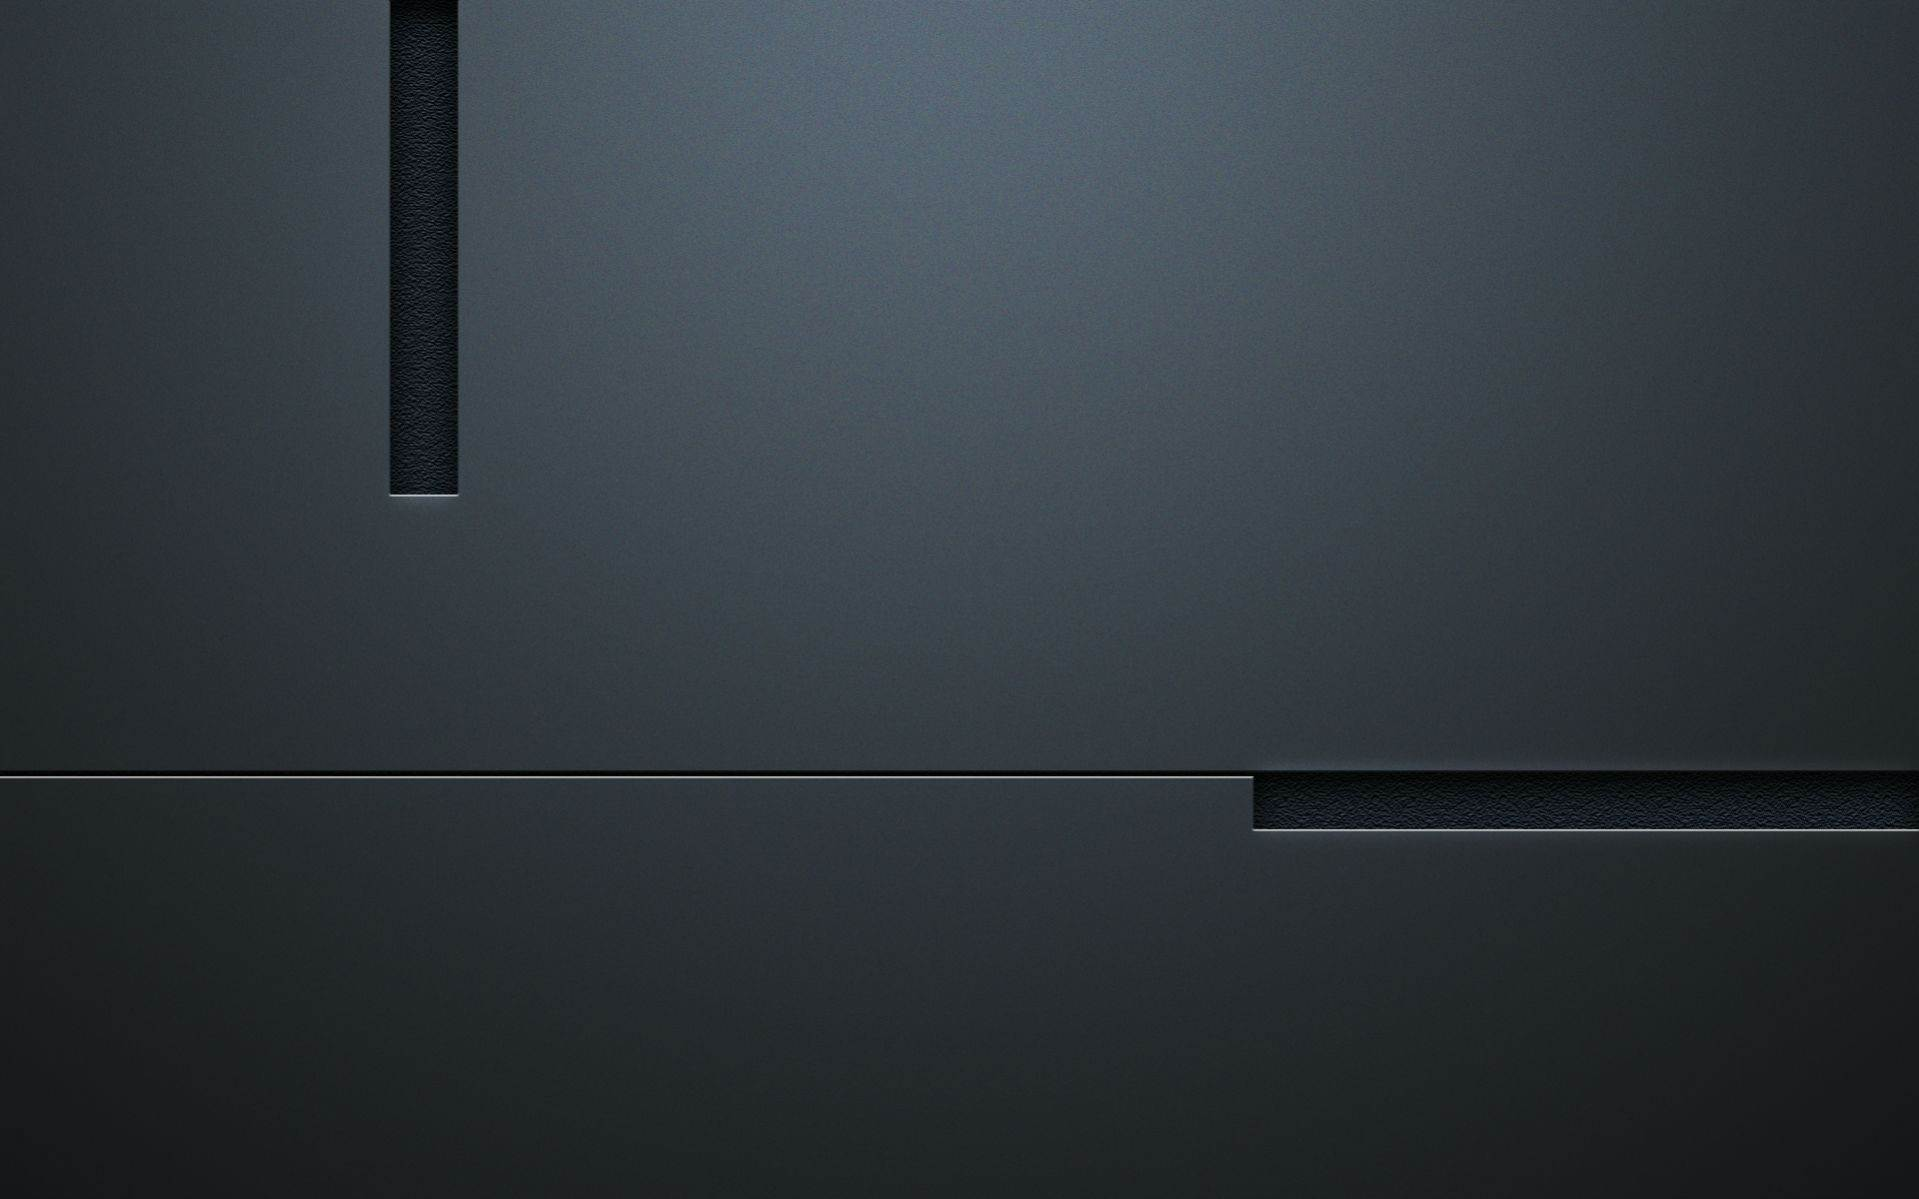 Images About Minimalistic Iphone Wallpapers On Pinterest 1919x1199